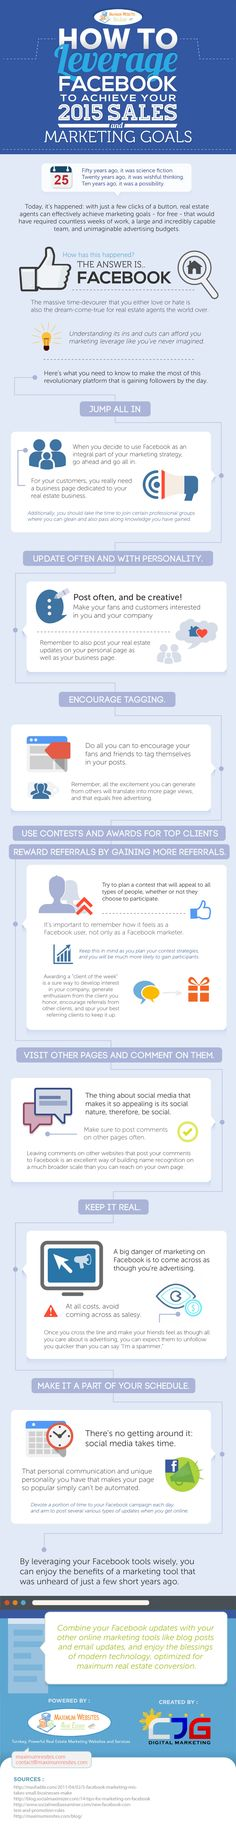 How to Leverage #Facebook to Meet Your 2015 Sales and Marketing Goals (#Infographic) #socialmedia